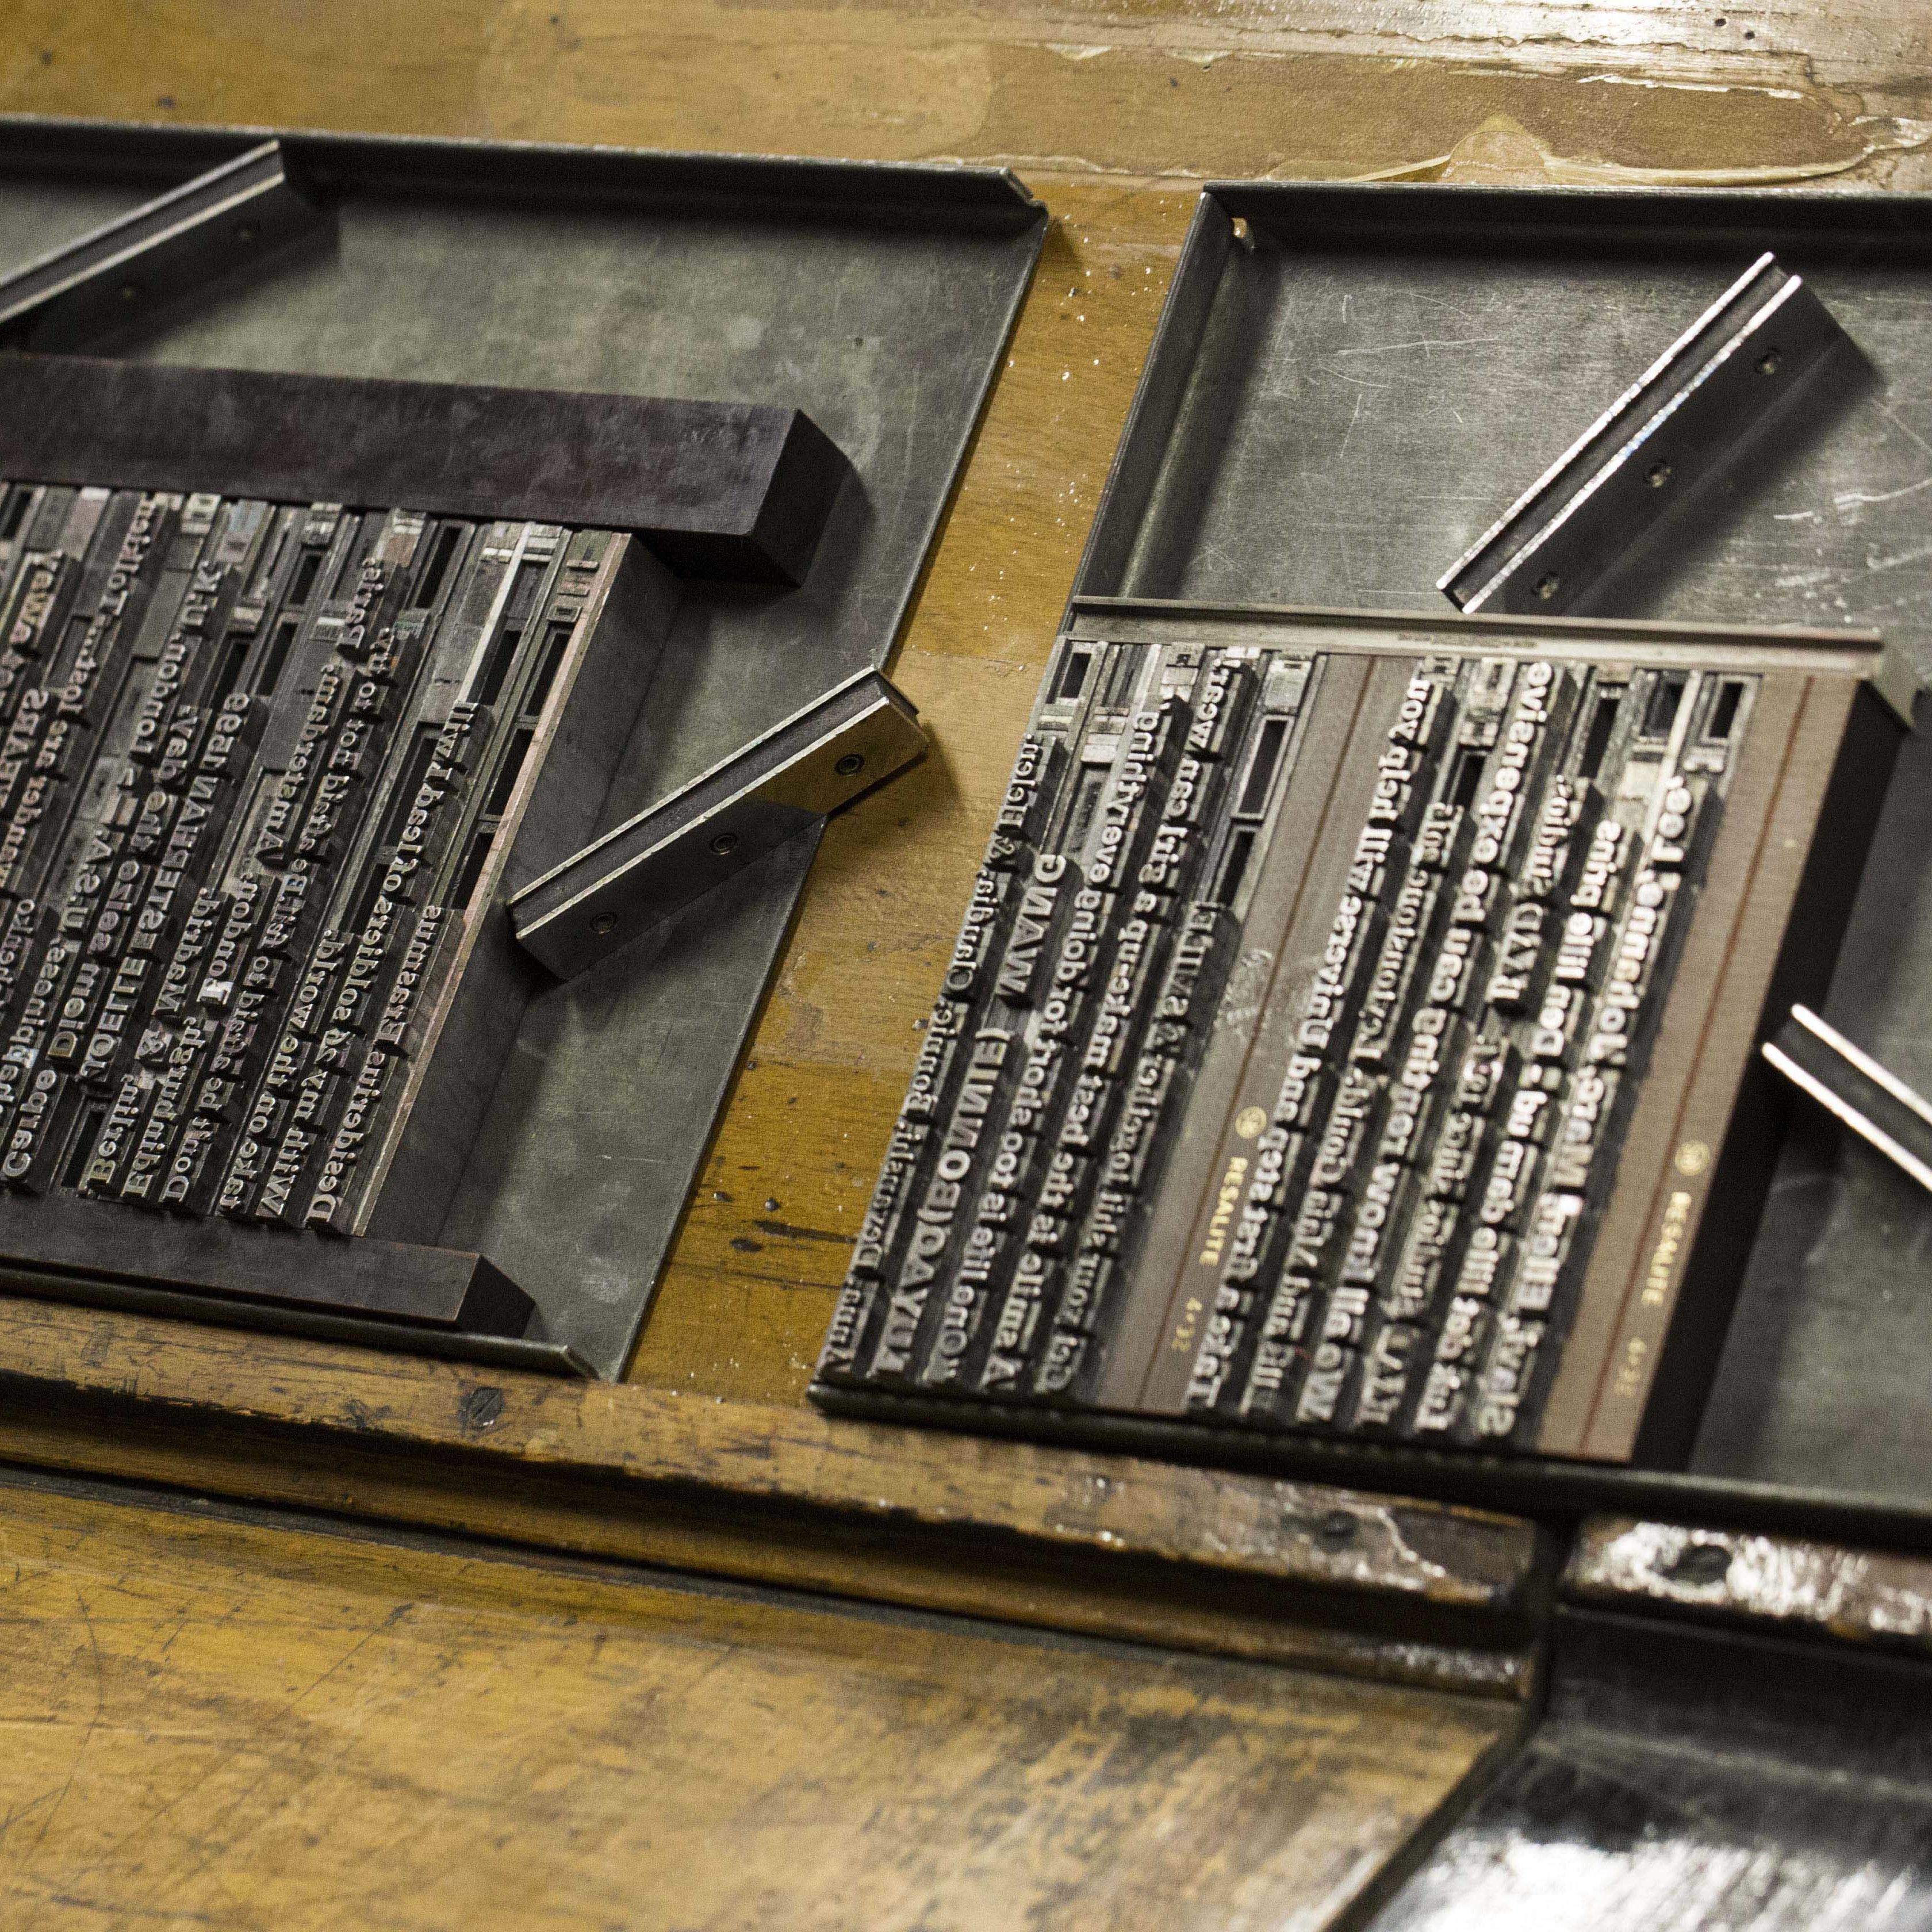 People using the letterpress at Central Saint Martins